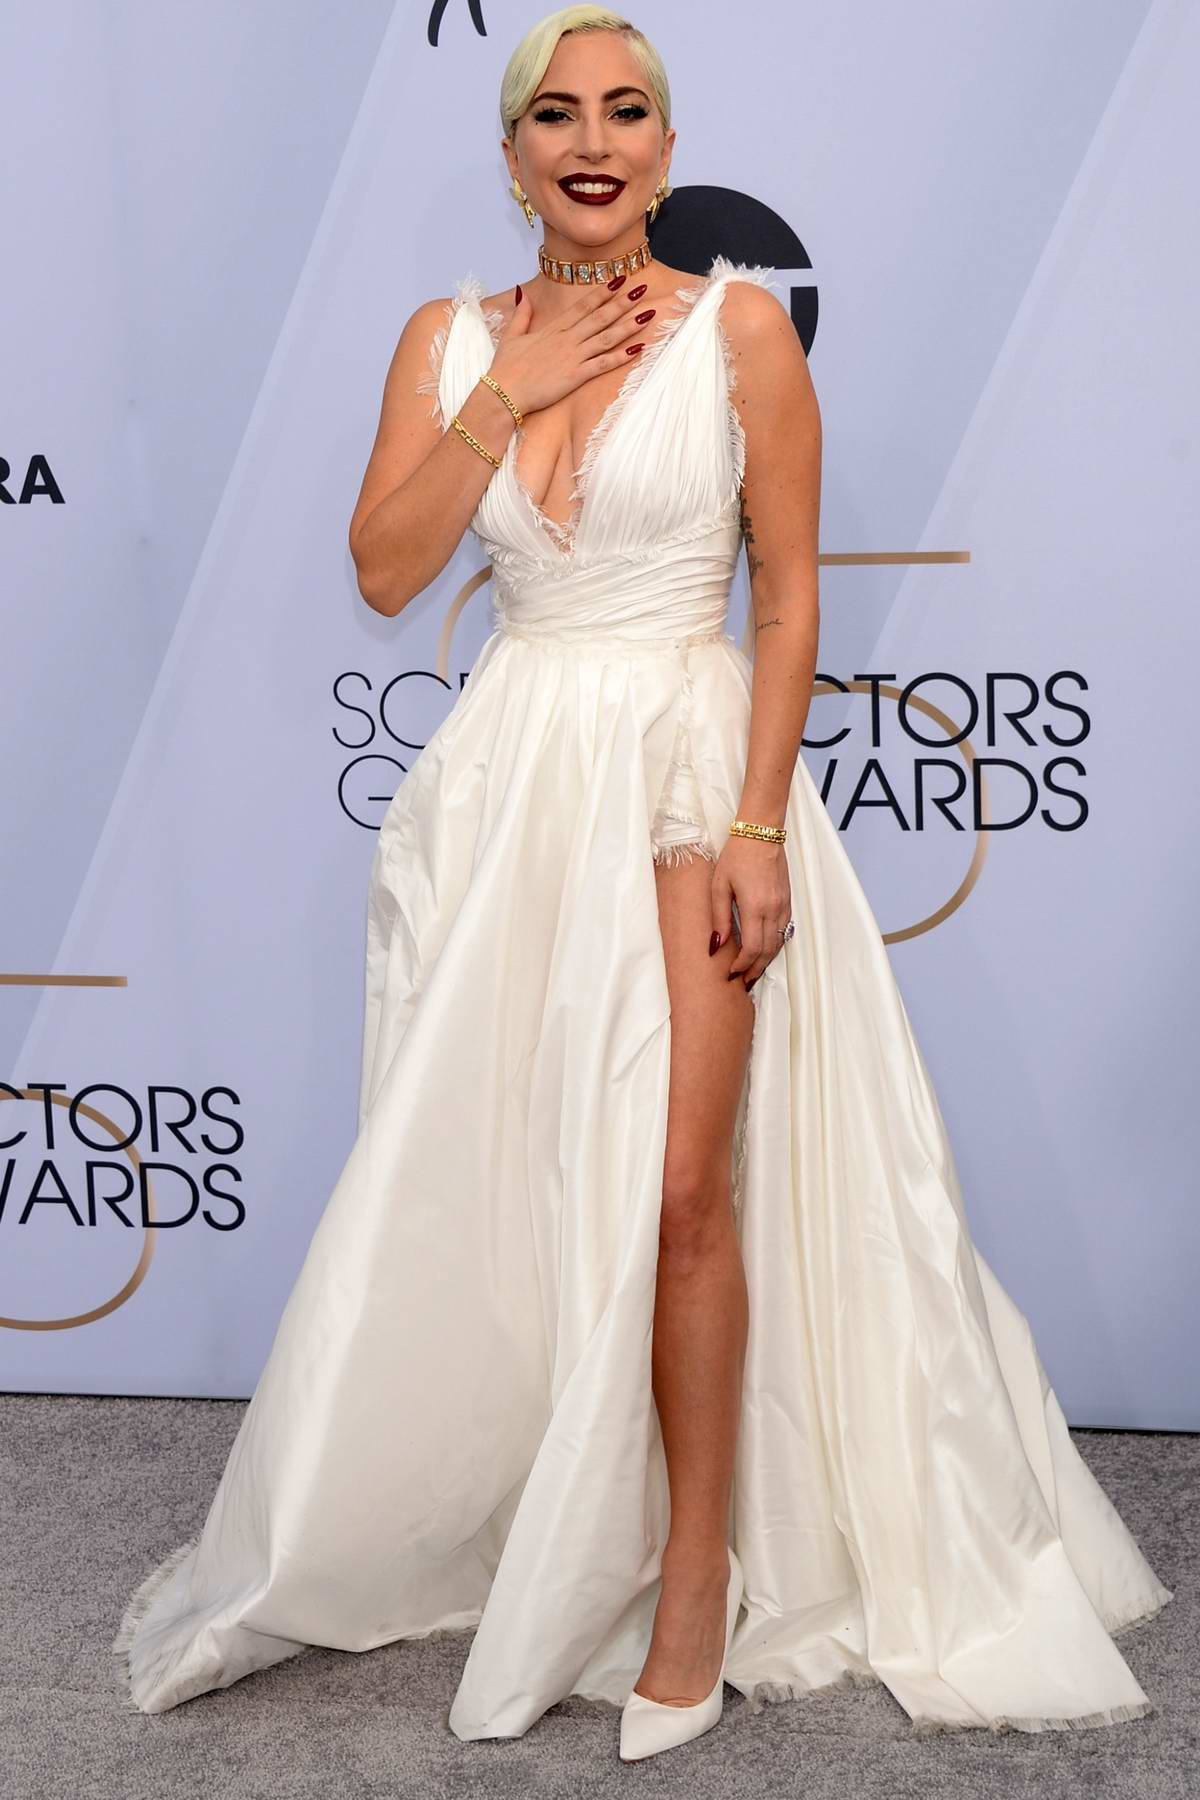 Lady Gaga attends the 25th Annual Screen Actors Guild Awards (SAG 2019) at the Shrine Auditorium in Los Angeles